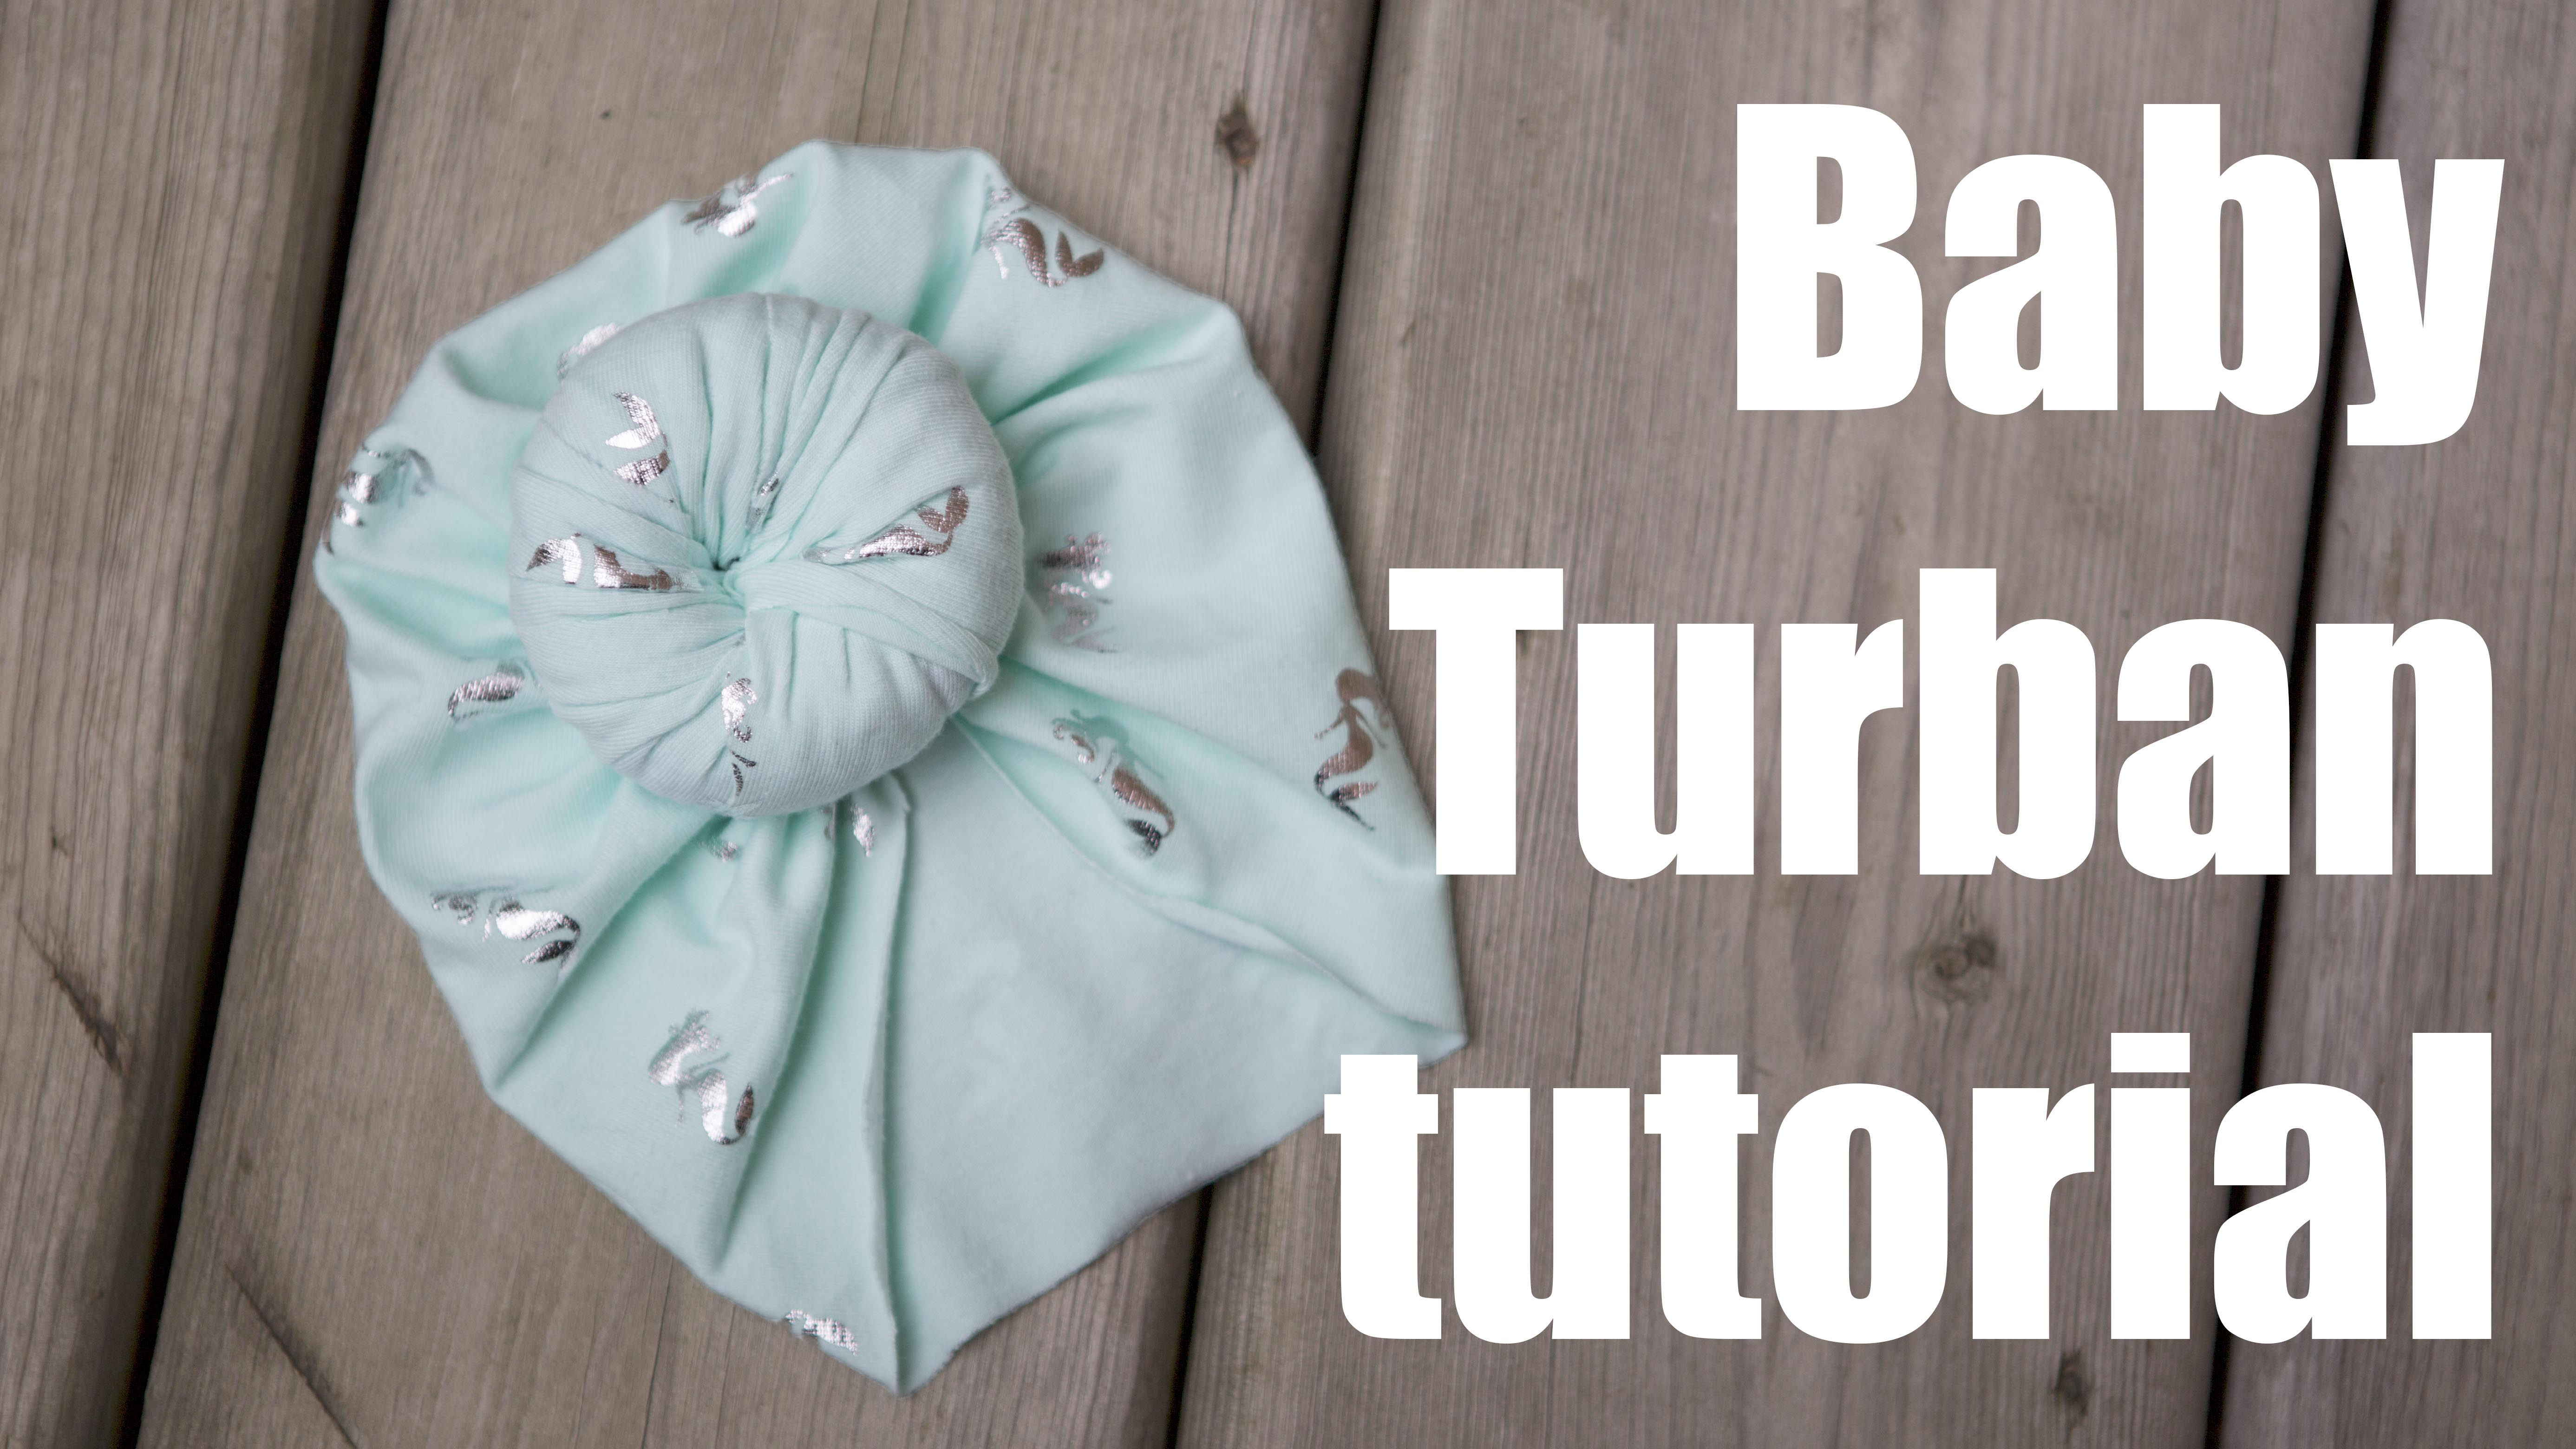 ac23215b6 Newborn Baby Turban hat | Charmed By Ashley